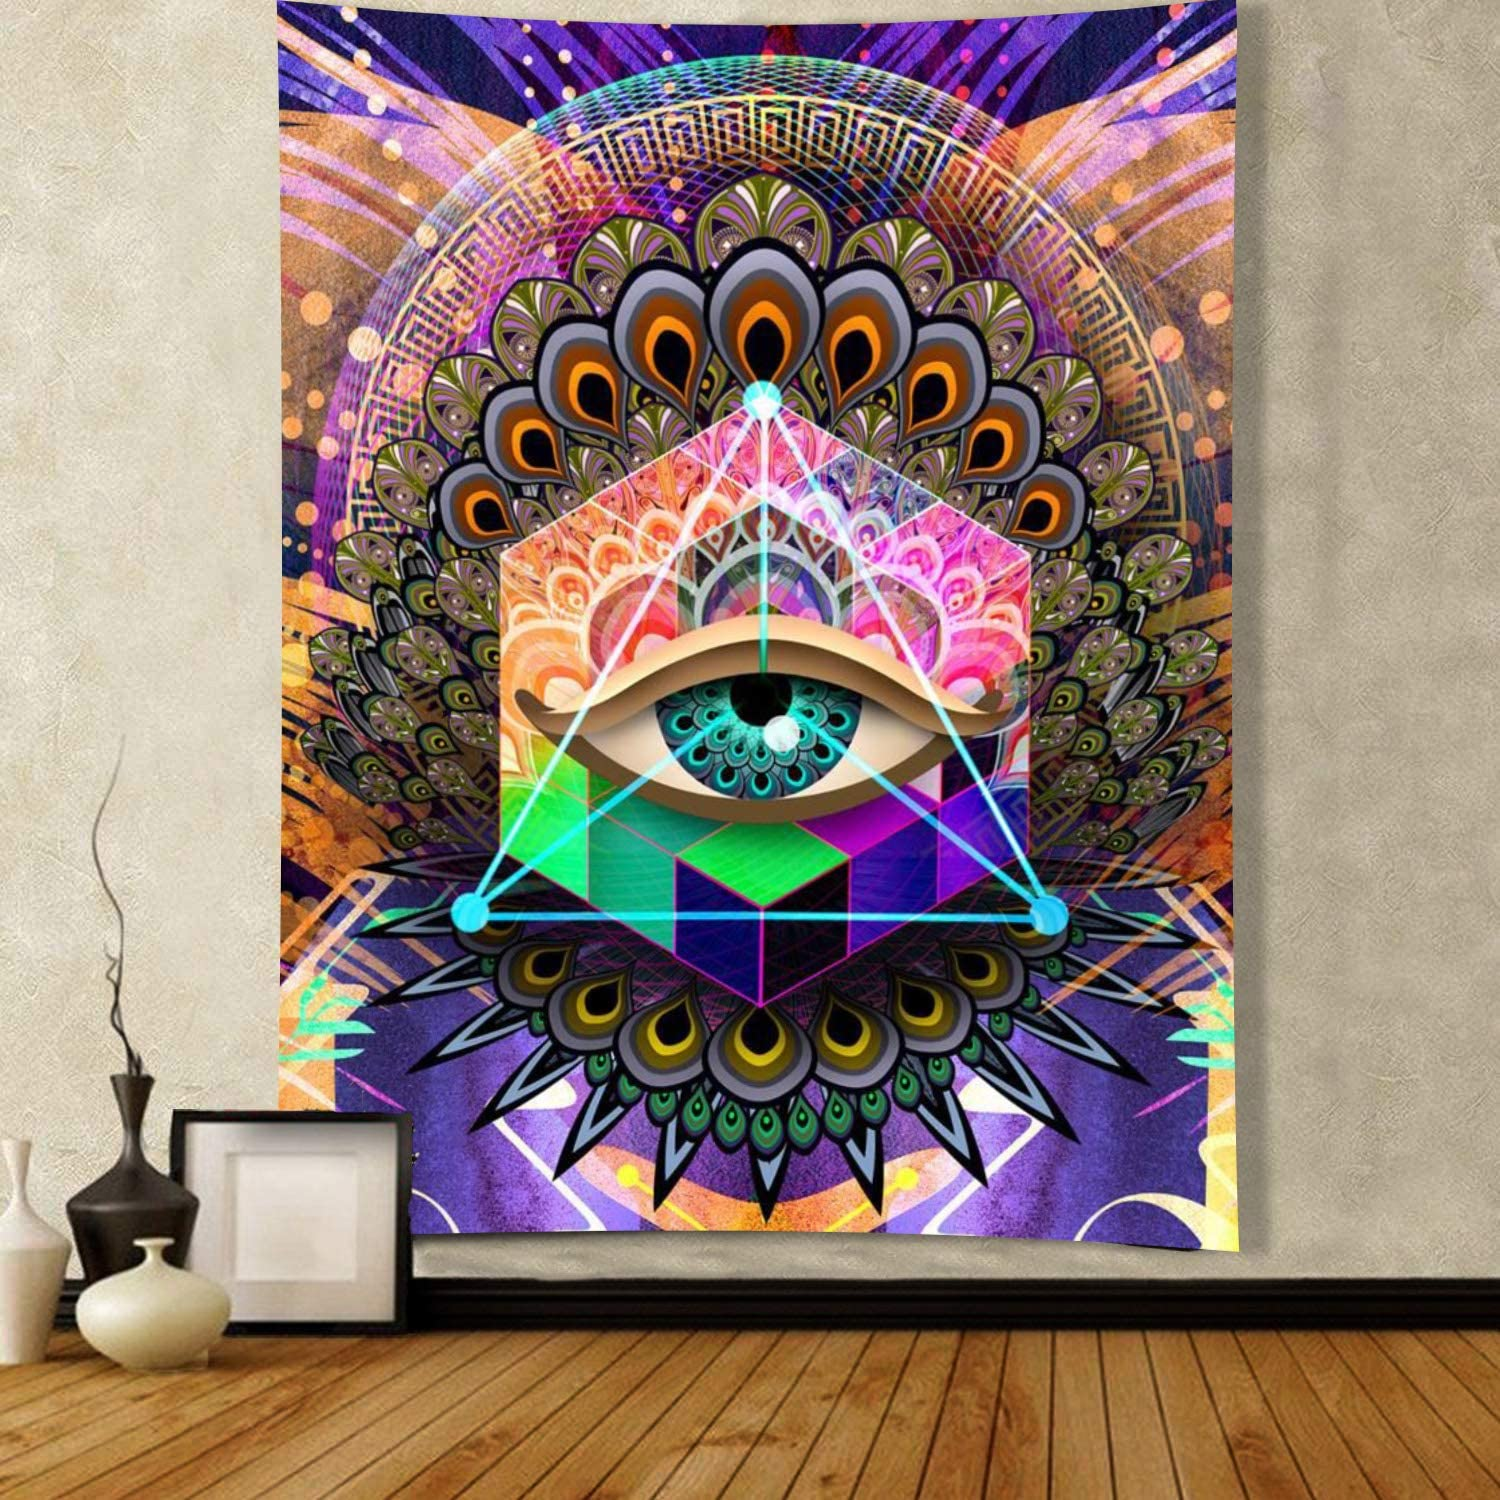 """ENJOHOS Psychedelic Wall Tapestry Cool Egyptian Eye of Horus Boho Mandala Eye Tapestry Wall Hanging Colorful Hippie Bohemian Wall Tapestry for Bedroom Living Room Dorm(Eye,W44"""" x T60"""")"""